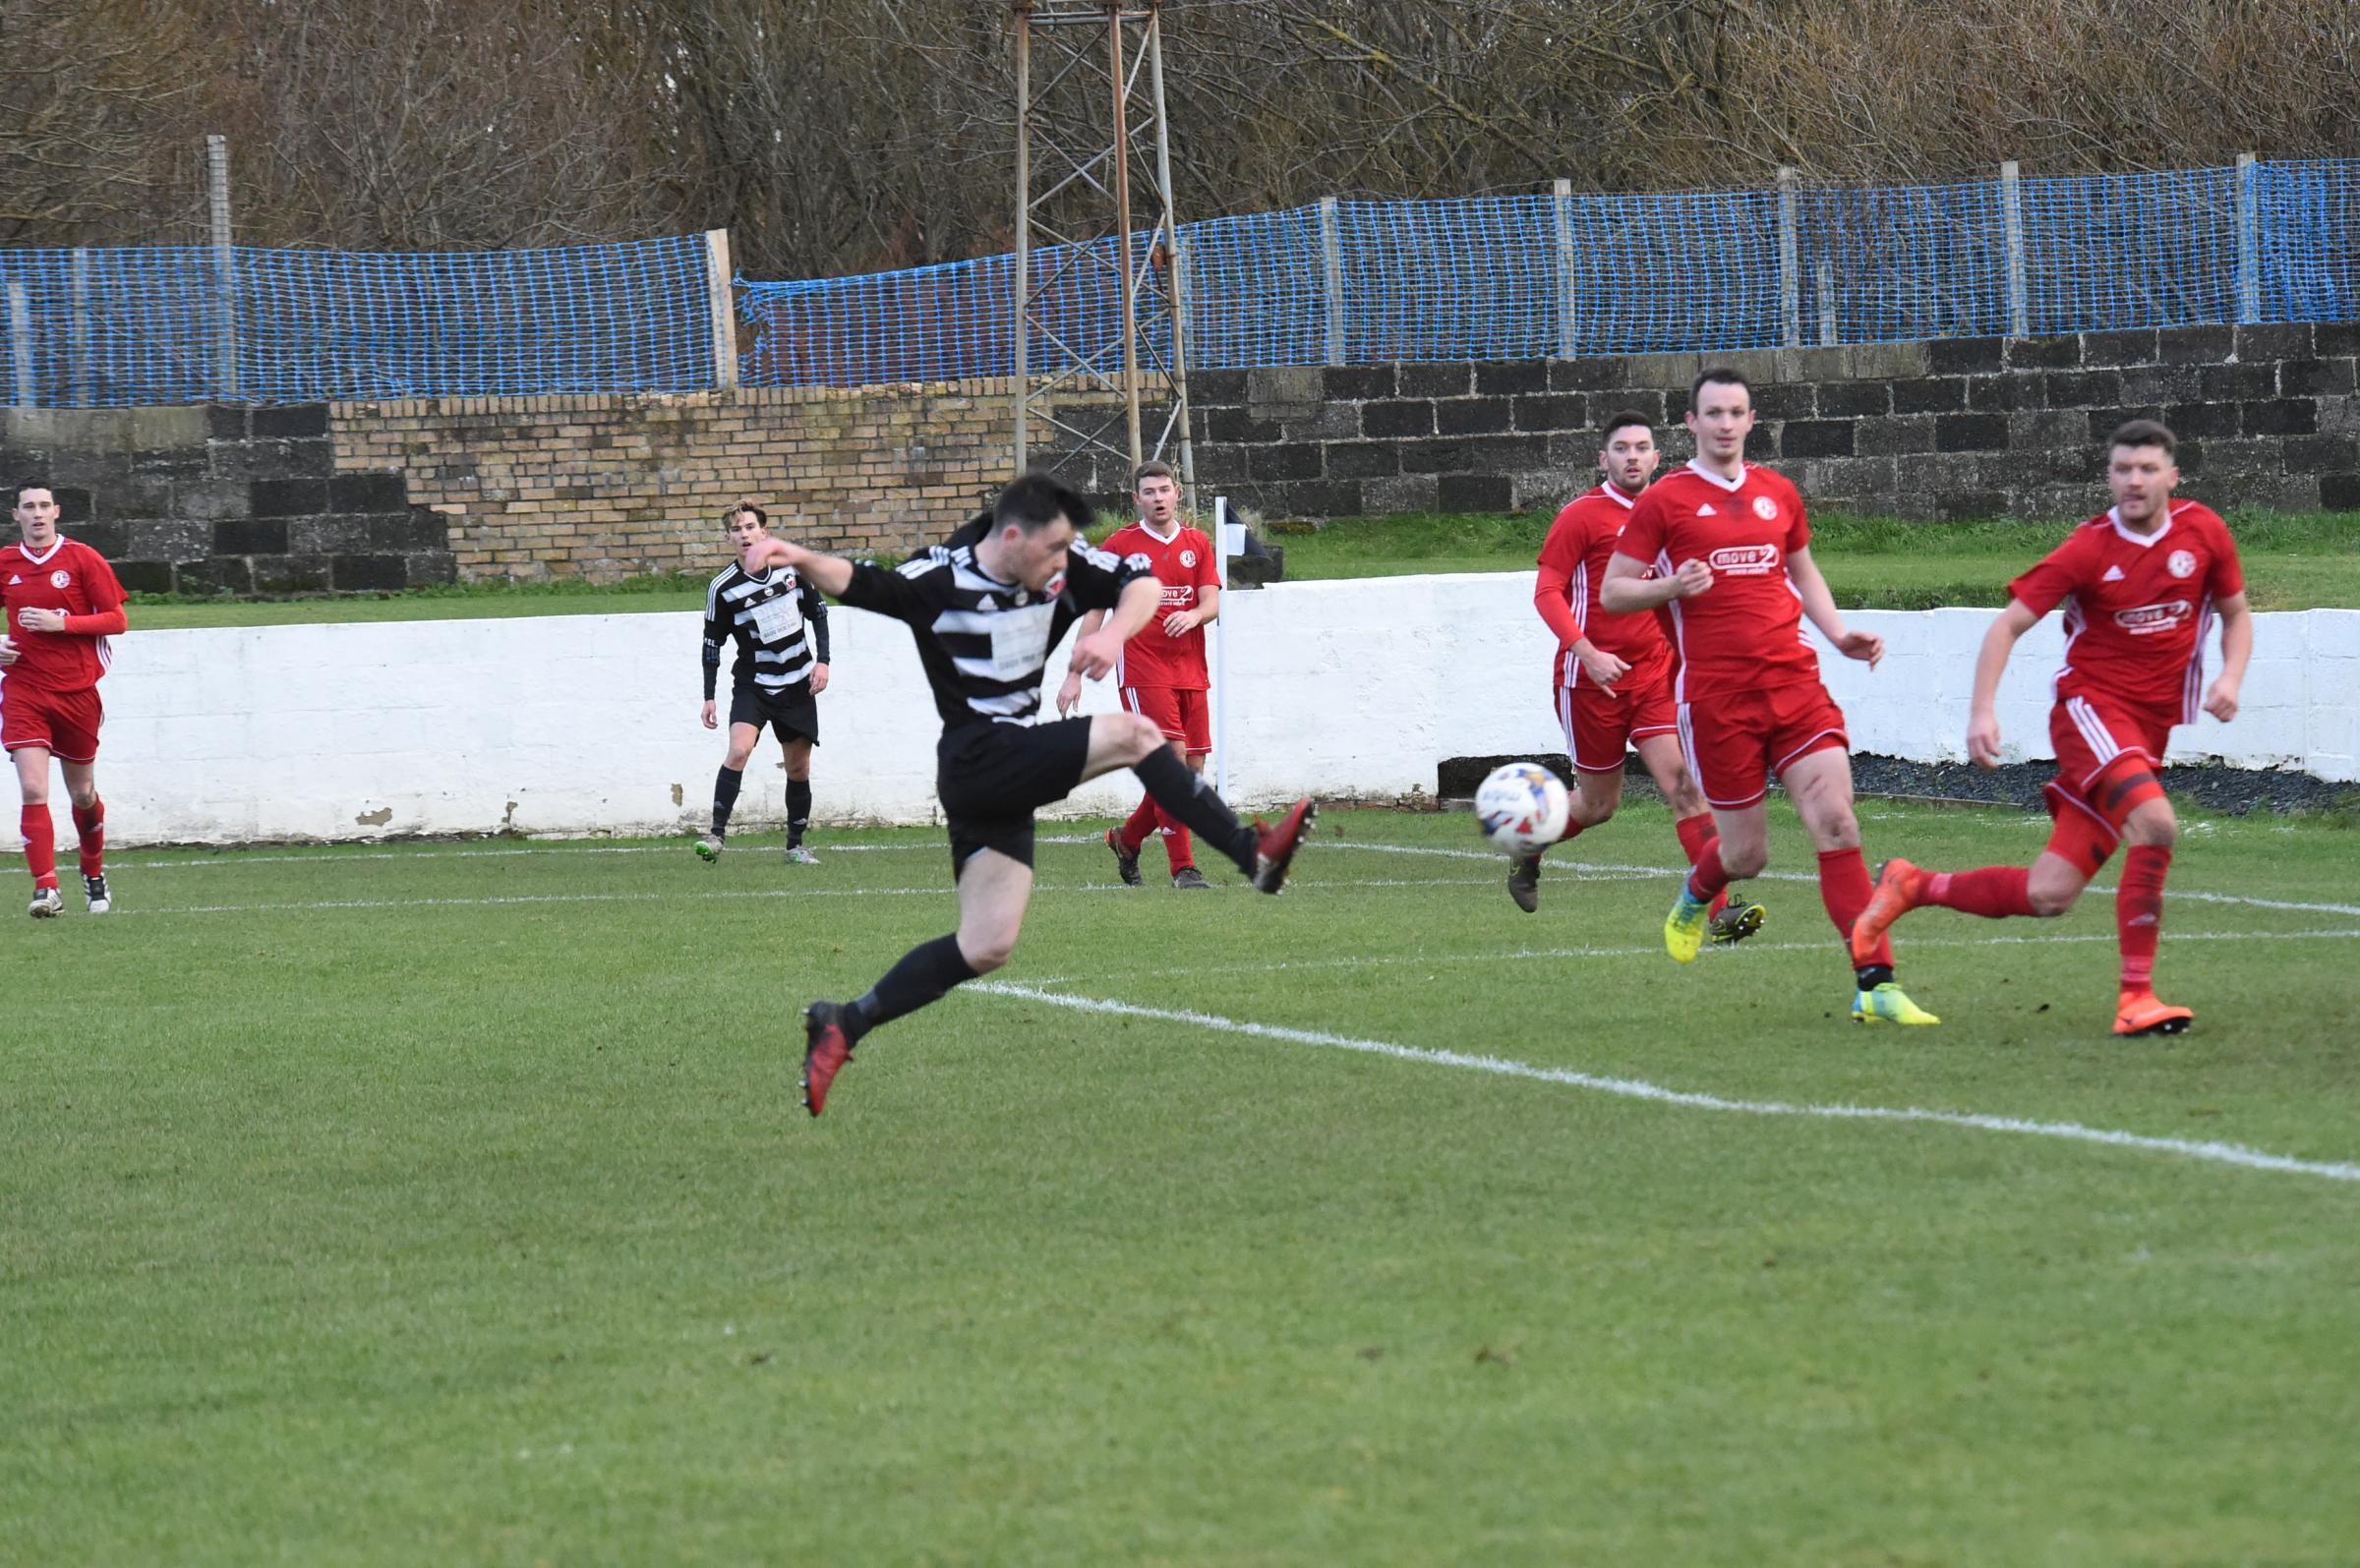 BREAKTHROUGH MADE: Thomas Donovan fires Ardrossan Winton Rovers ahead en route to victory against Ardeer Thistle.